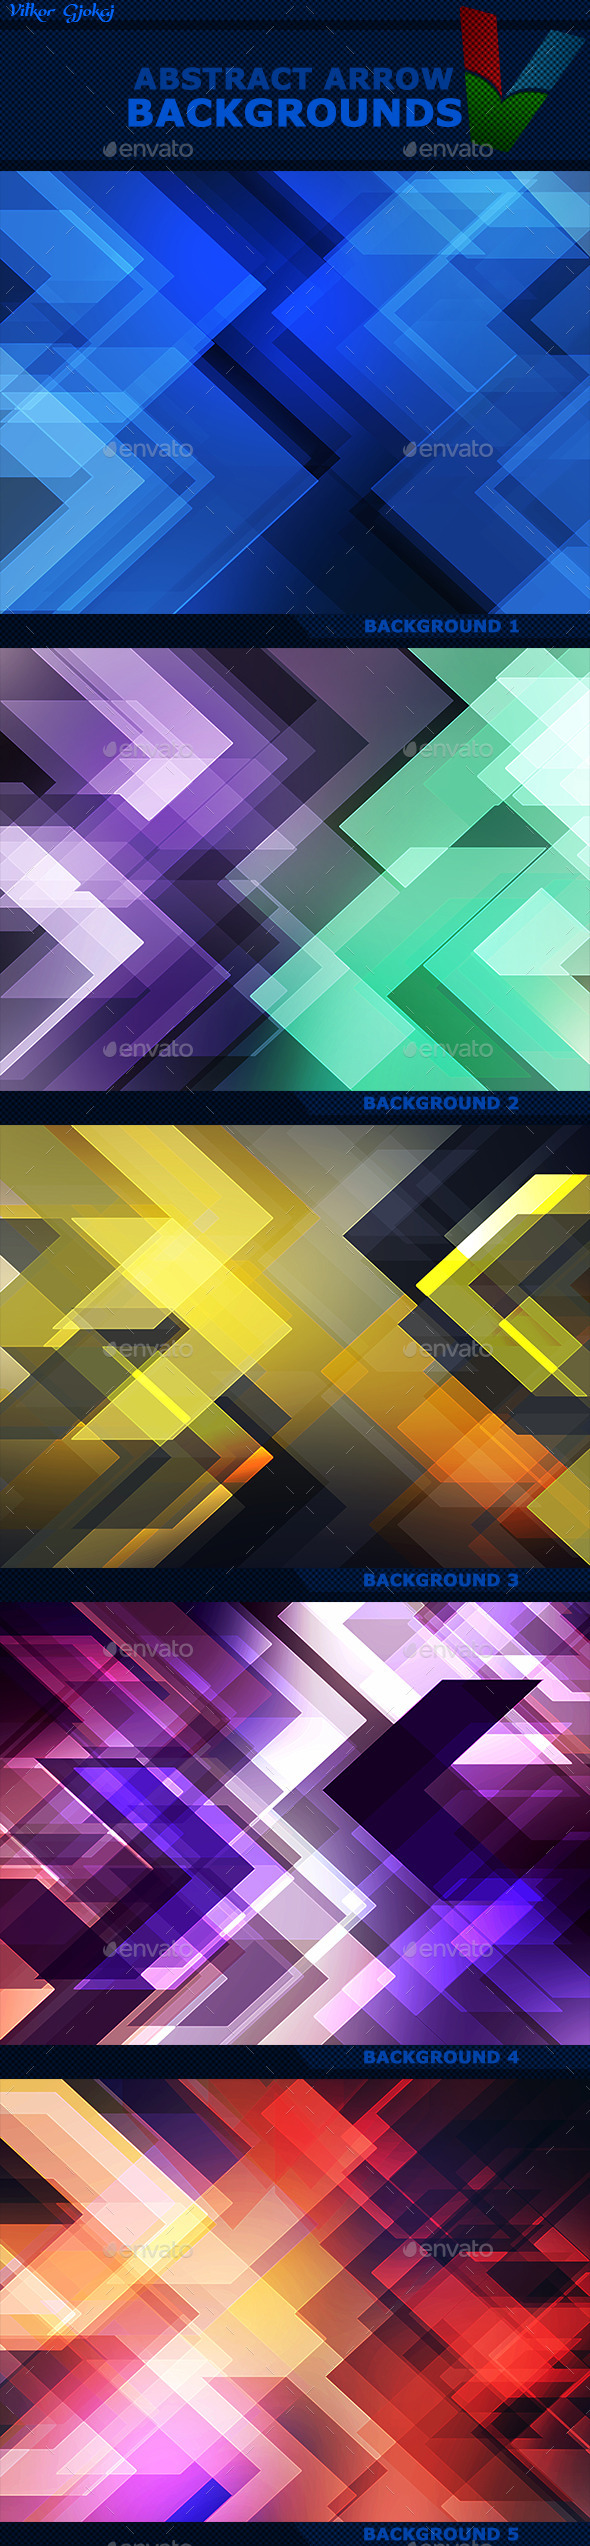 Abstract Arrow Backgrounds - Abstract Backgrounds